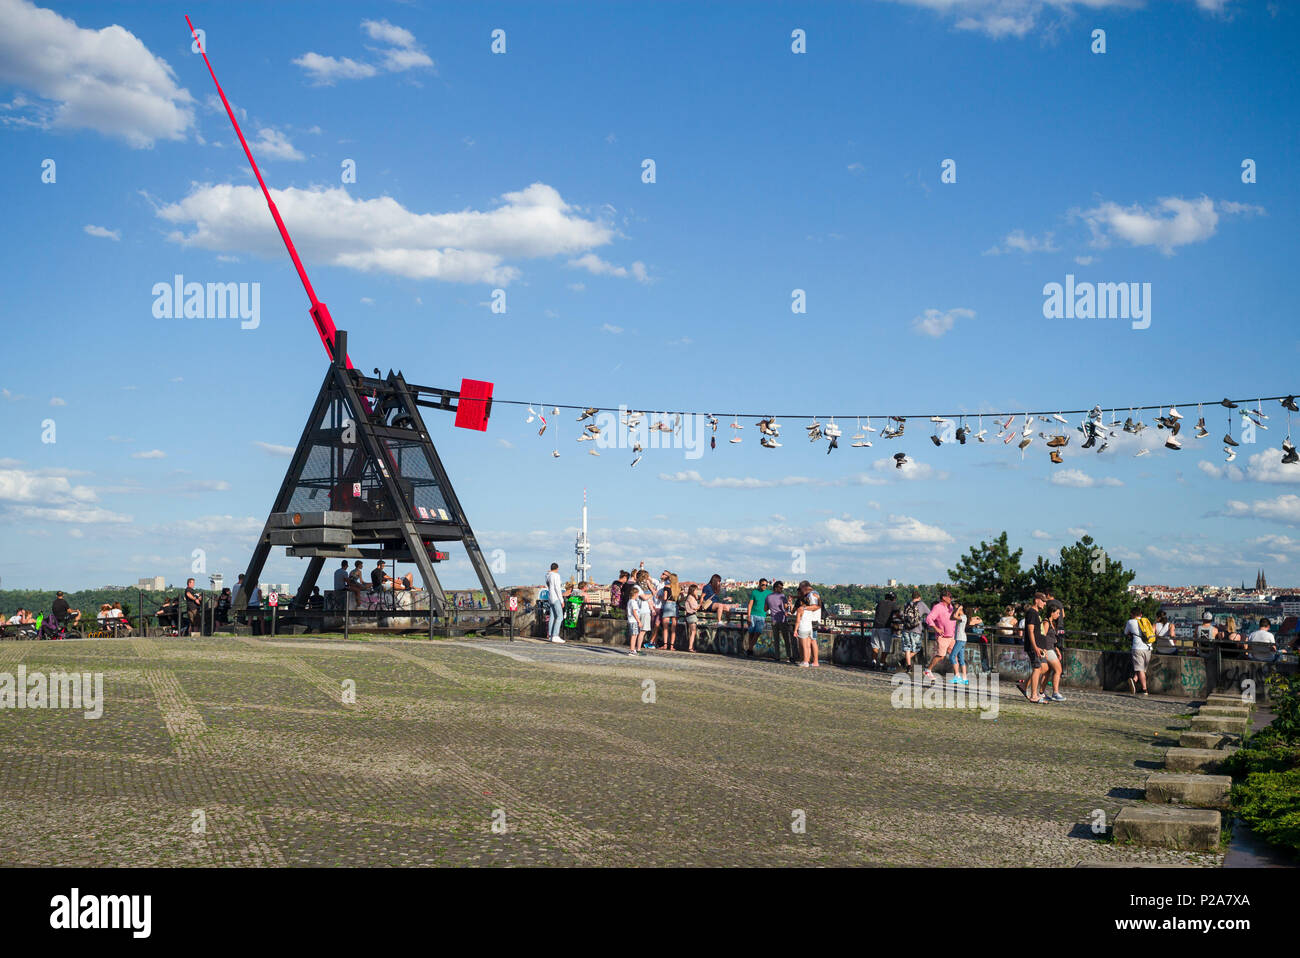 Prague. Czech Republic. People gather at the Metronome in Letná Park for views across the city. Stock Photo